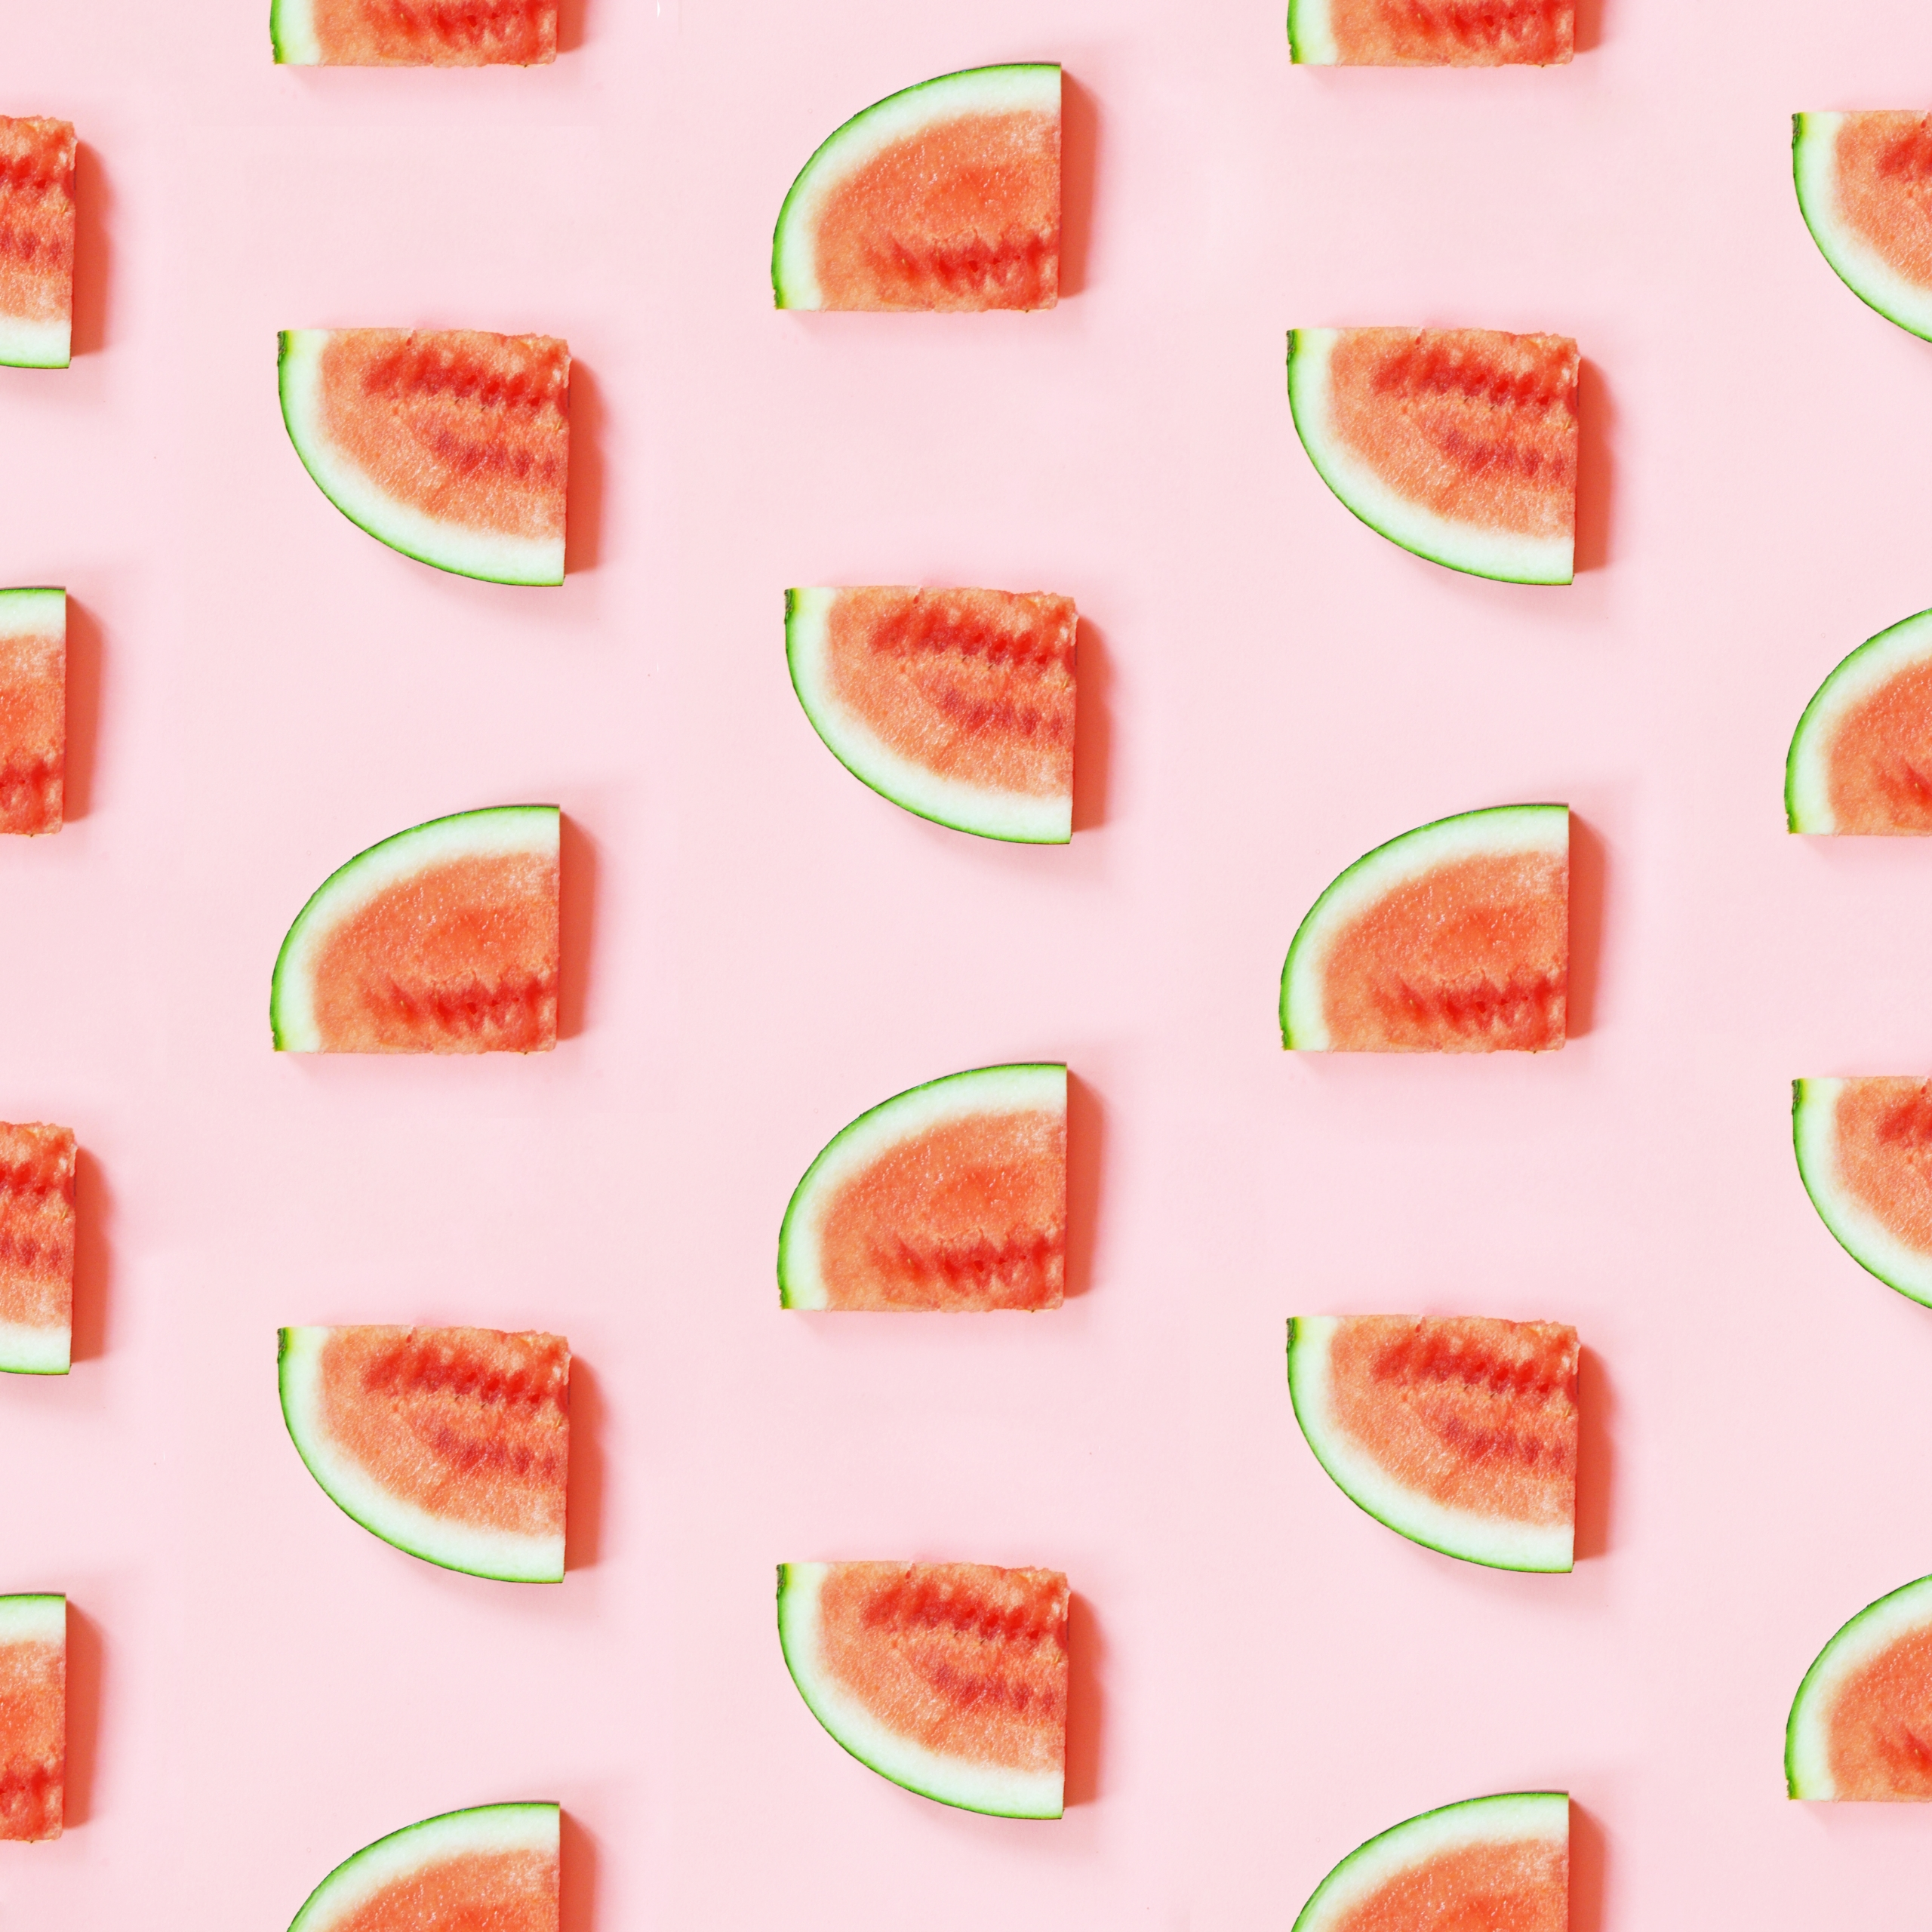 Colors Collective Watermelon Pr - colorscollective | ello